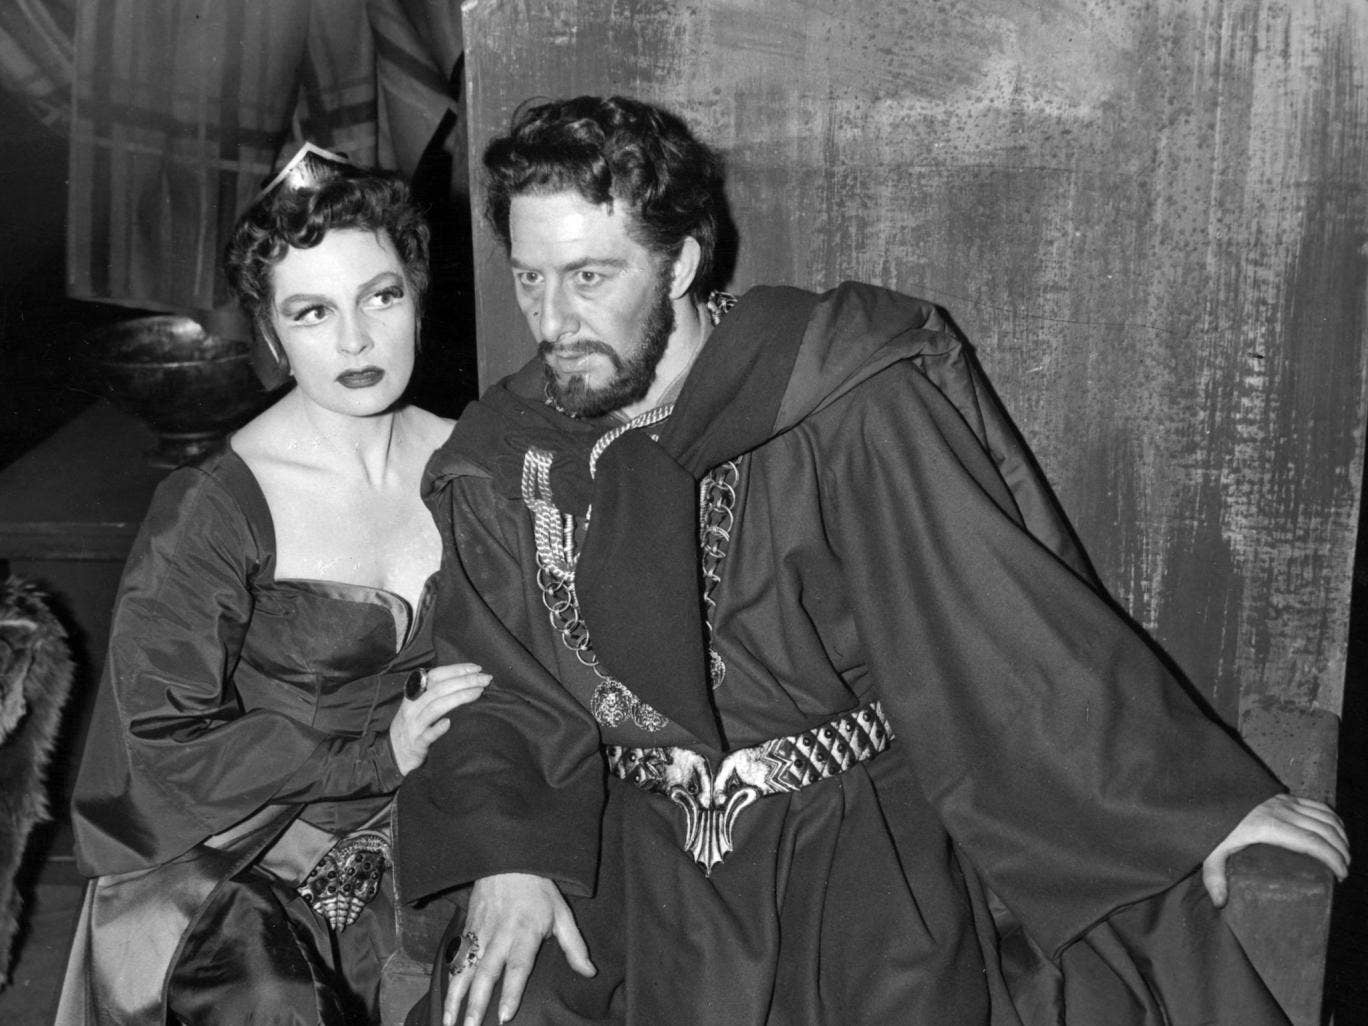 Rogers as Macbeth, with Coral Browne as Lady Macbeth, in the 1956 production at the Old Vic in London